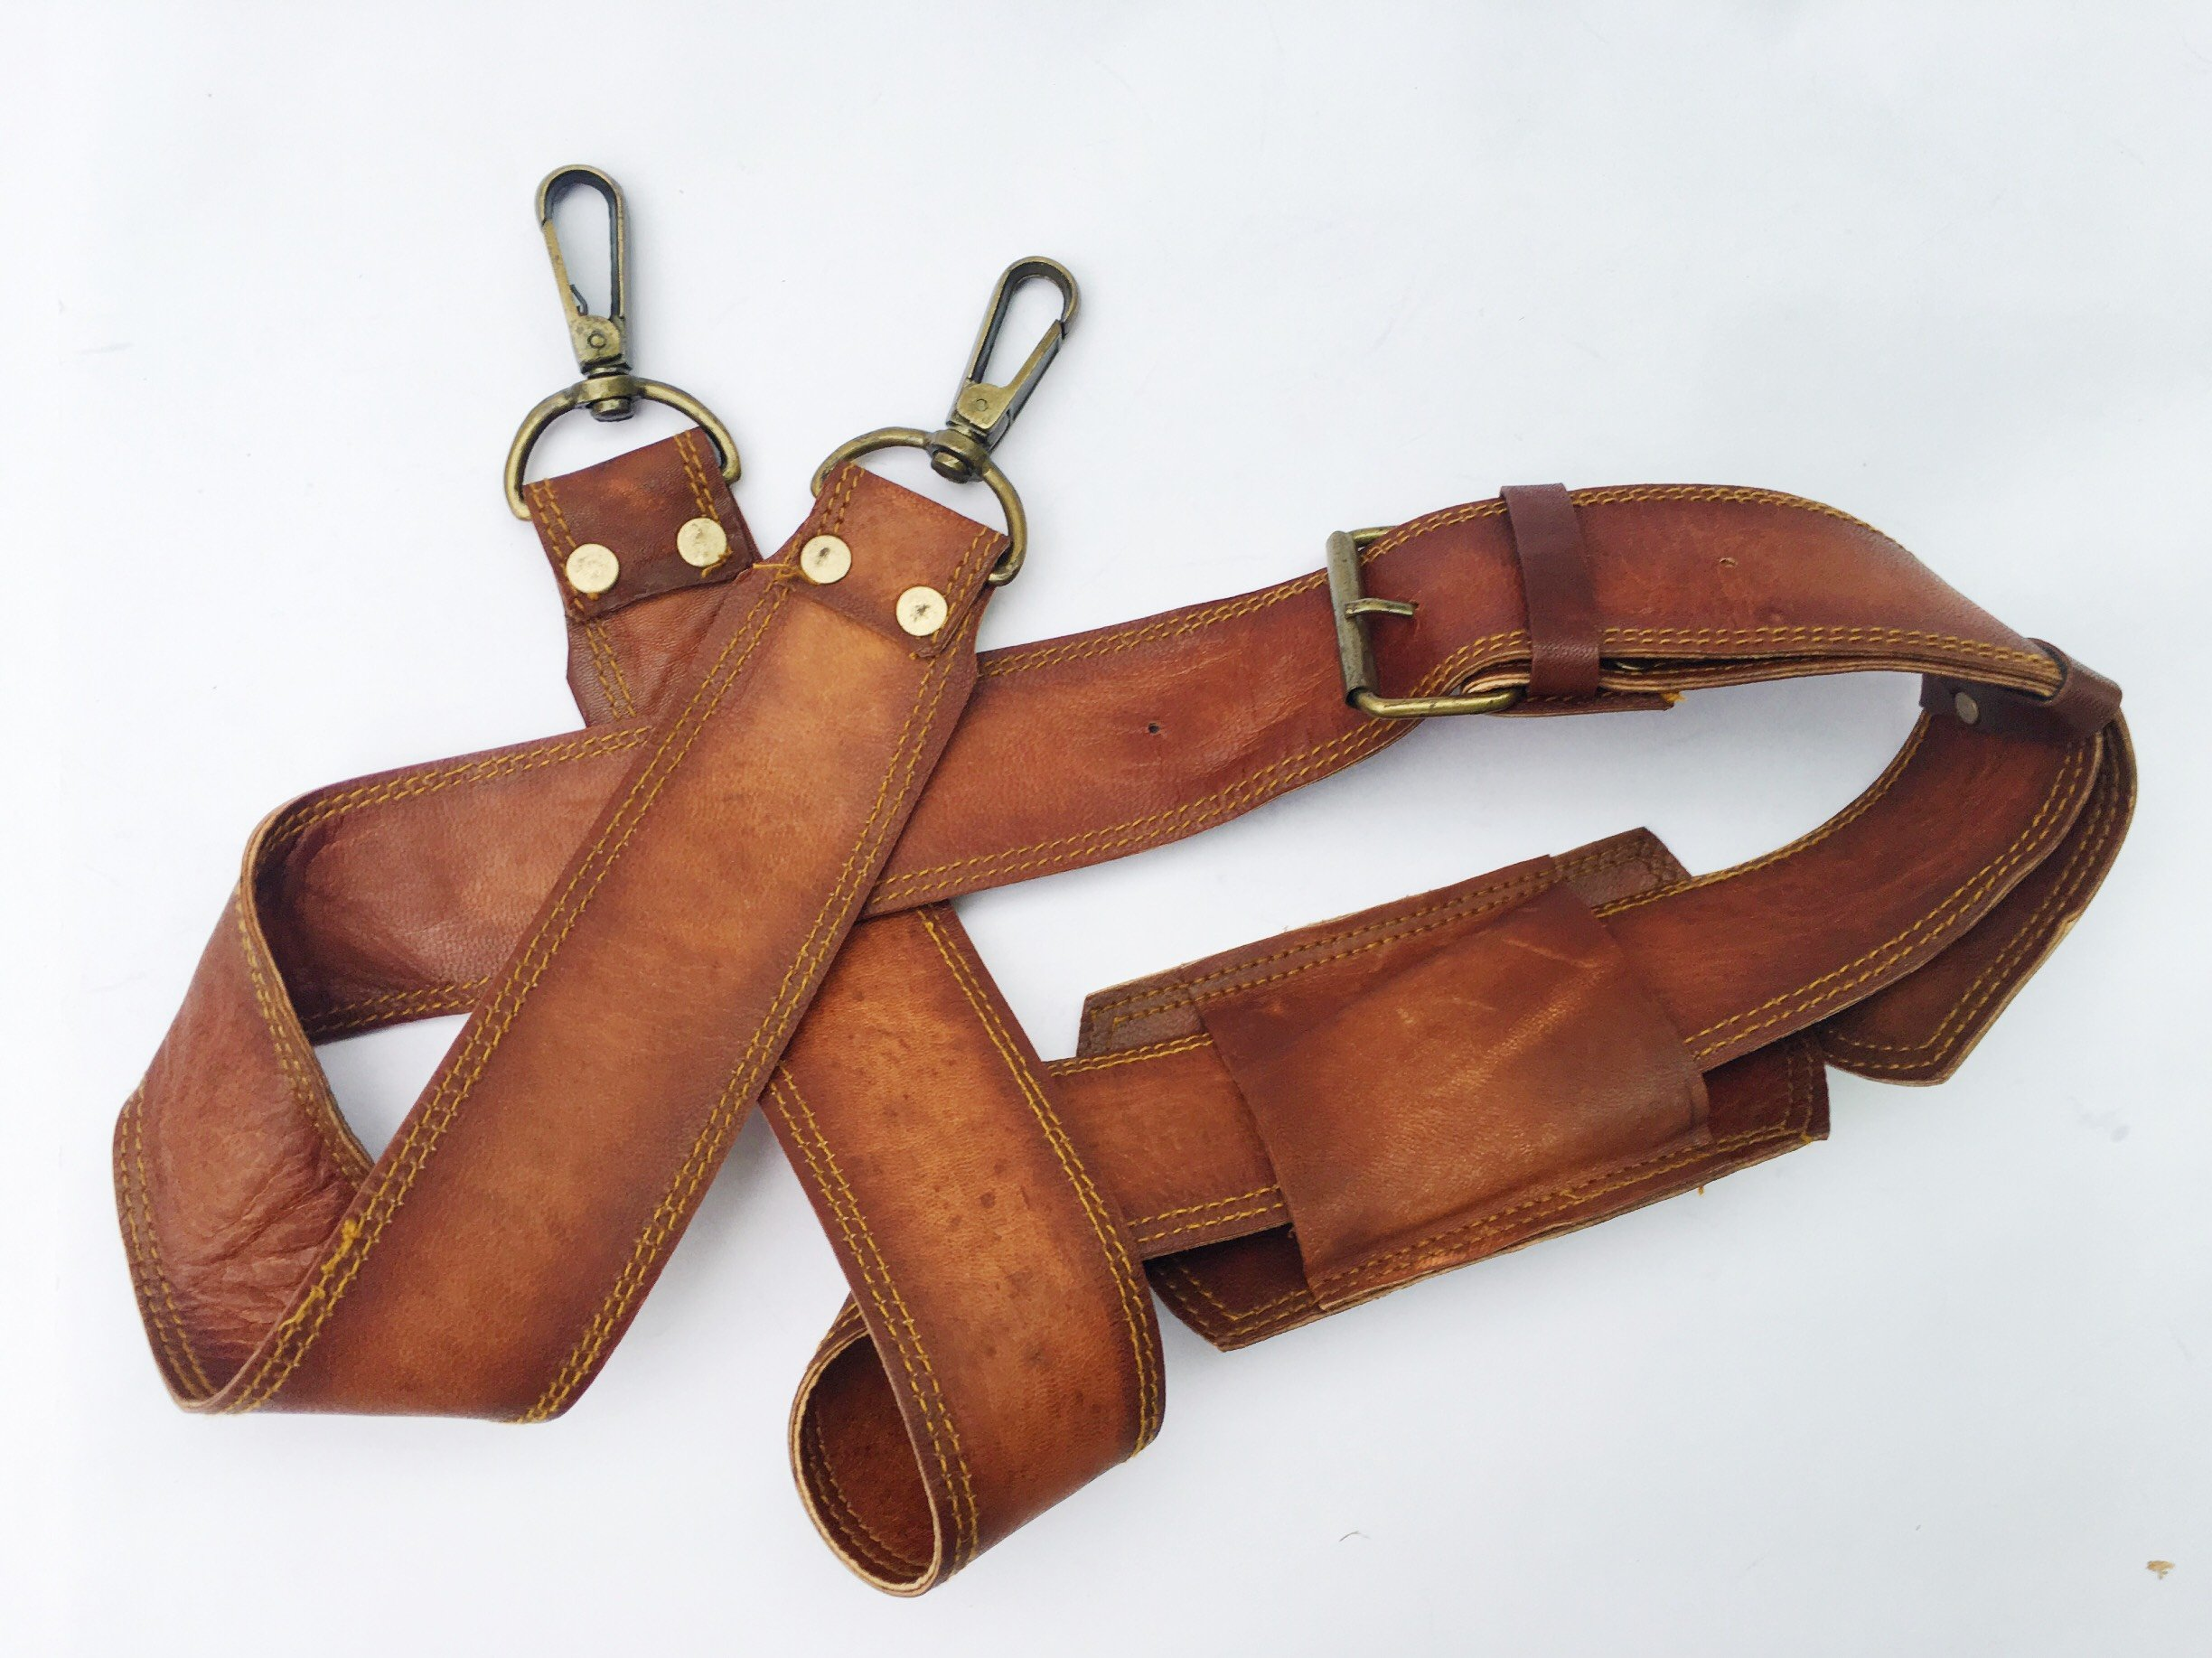 VINTAGE COUTURE Leather Adjustable Padded Replacement Shoulder Strap with Metal Swivel Hooks for Messenger, Laptop, Camera, Duffle Bags & More